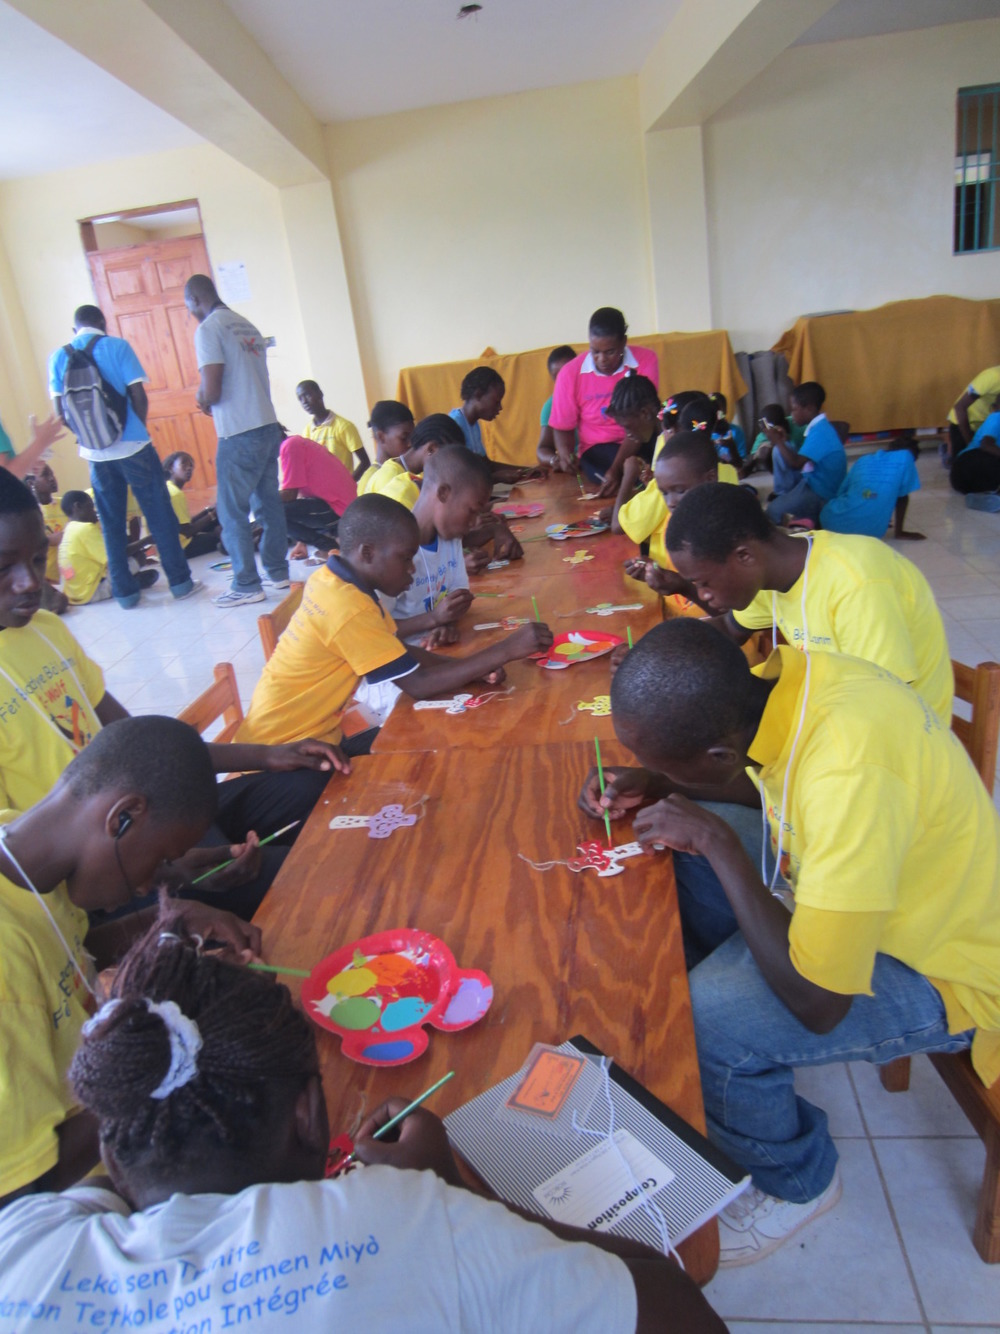 We're about a month out from Fet Bondye Bo Lanme 2012 (God's Party by the Sea): The Best Camp Ever!  Here's a picture from last year's camp of kids painting in Art.